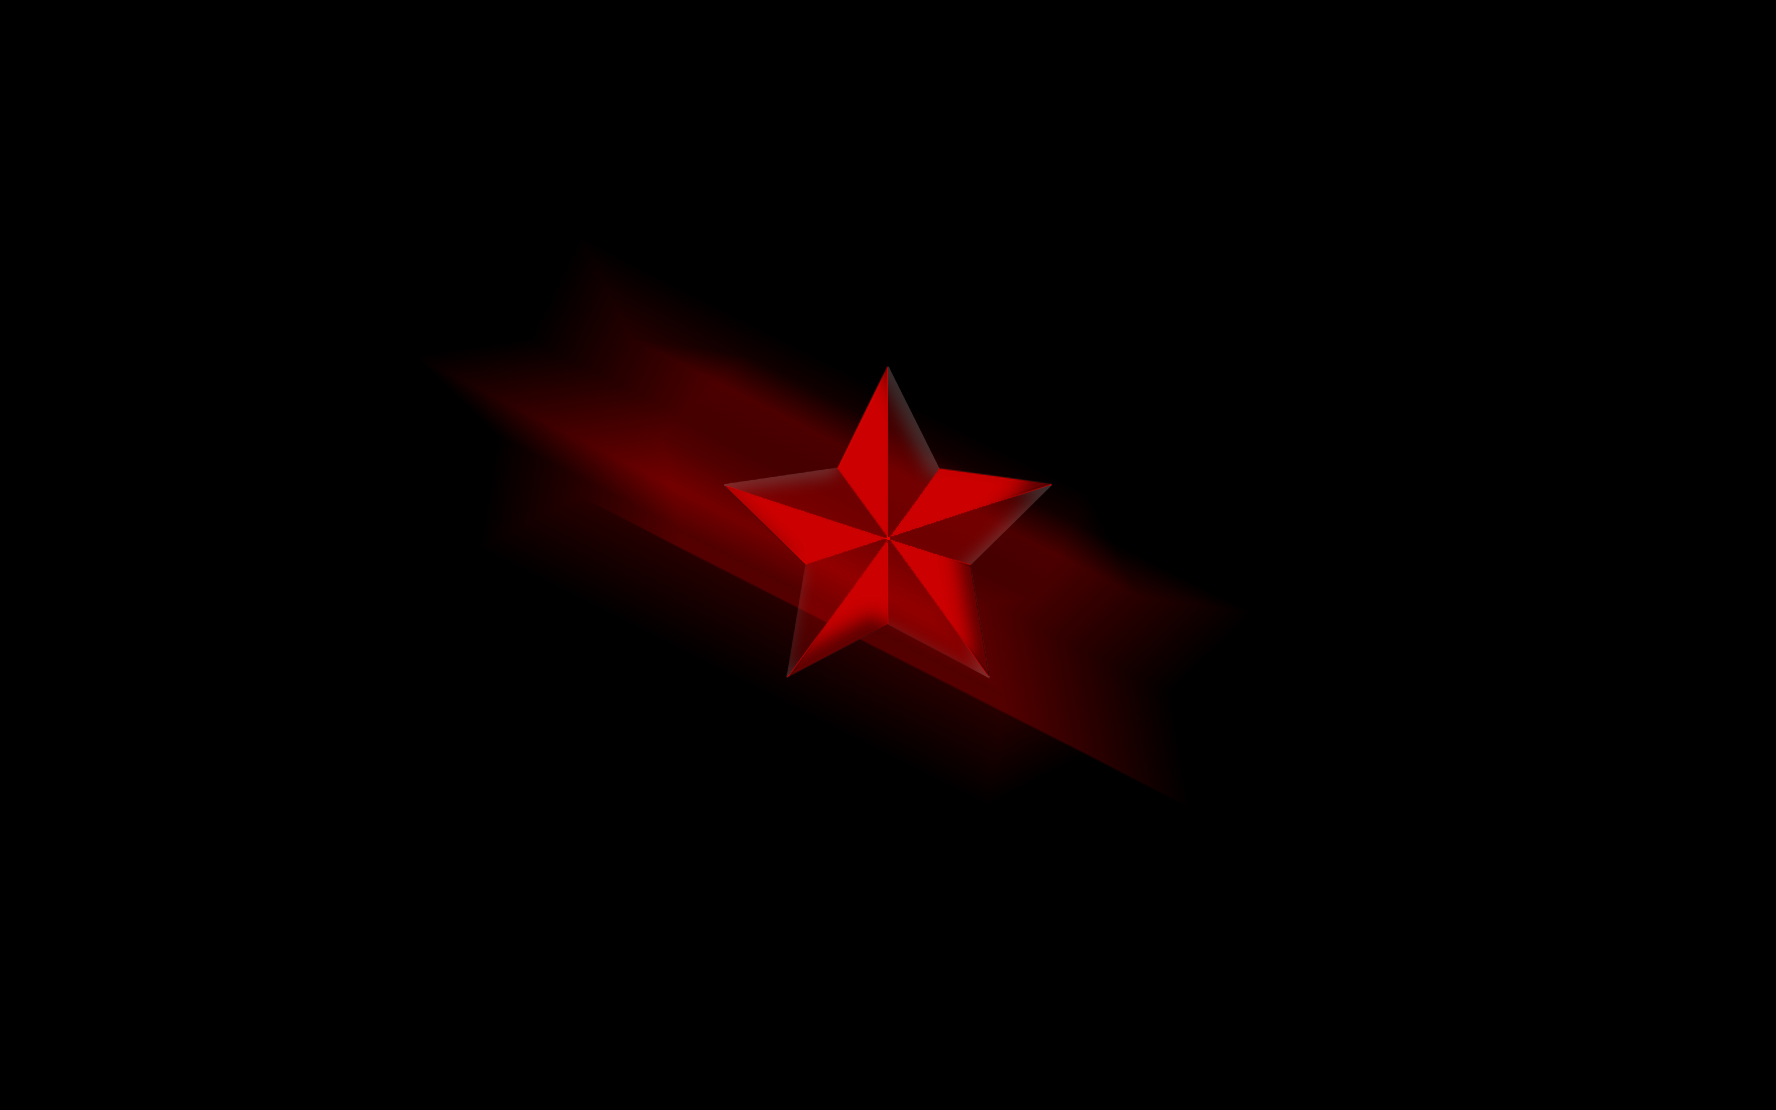 red star background - photo #35